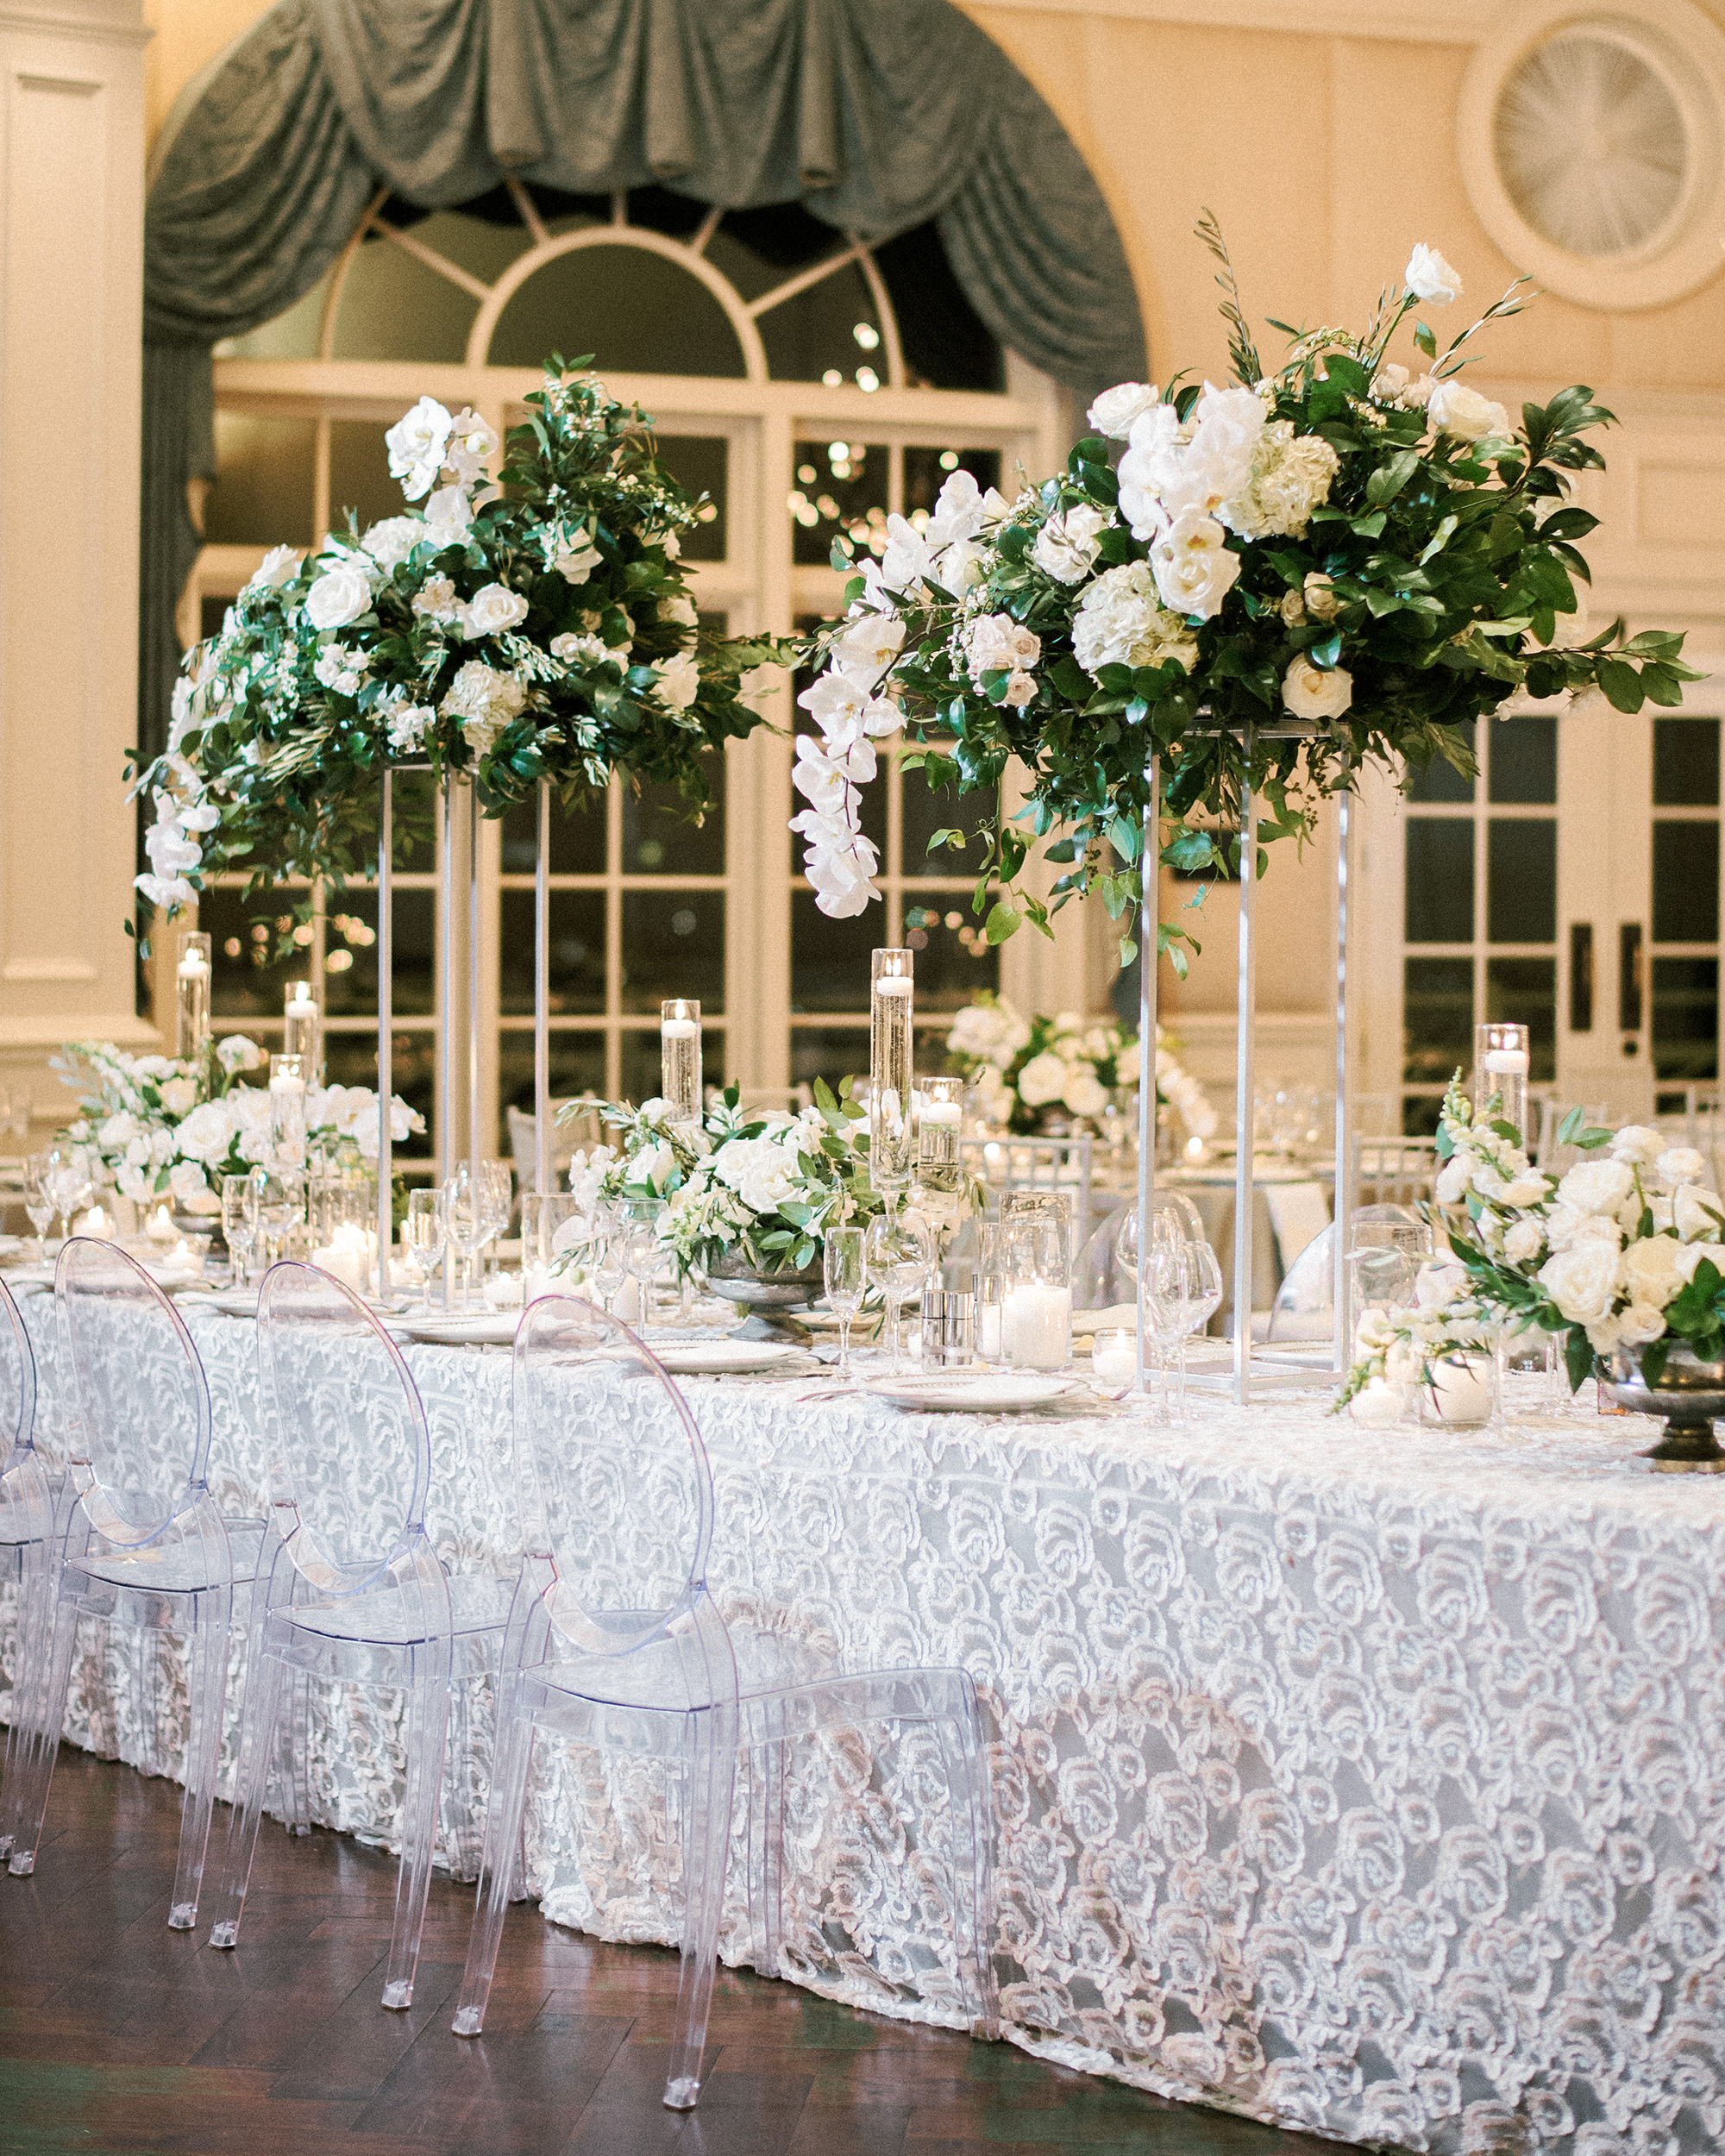 glamorous wedding ideas white lace table cover